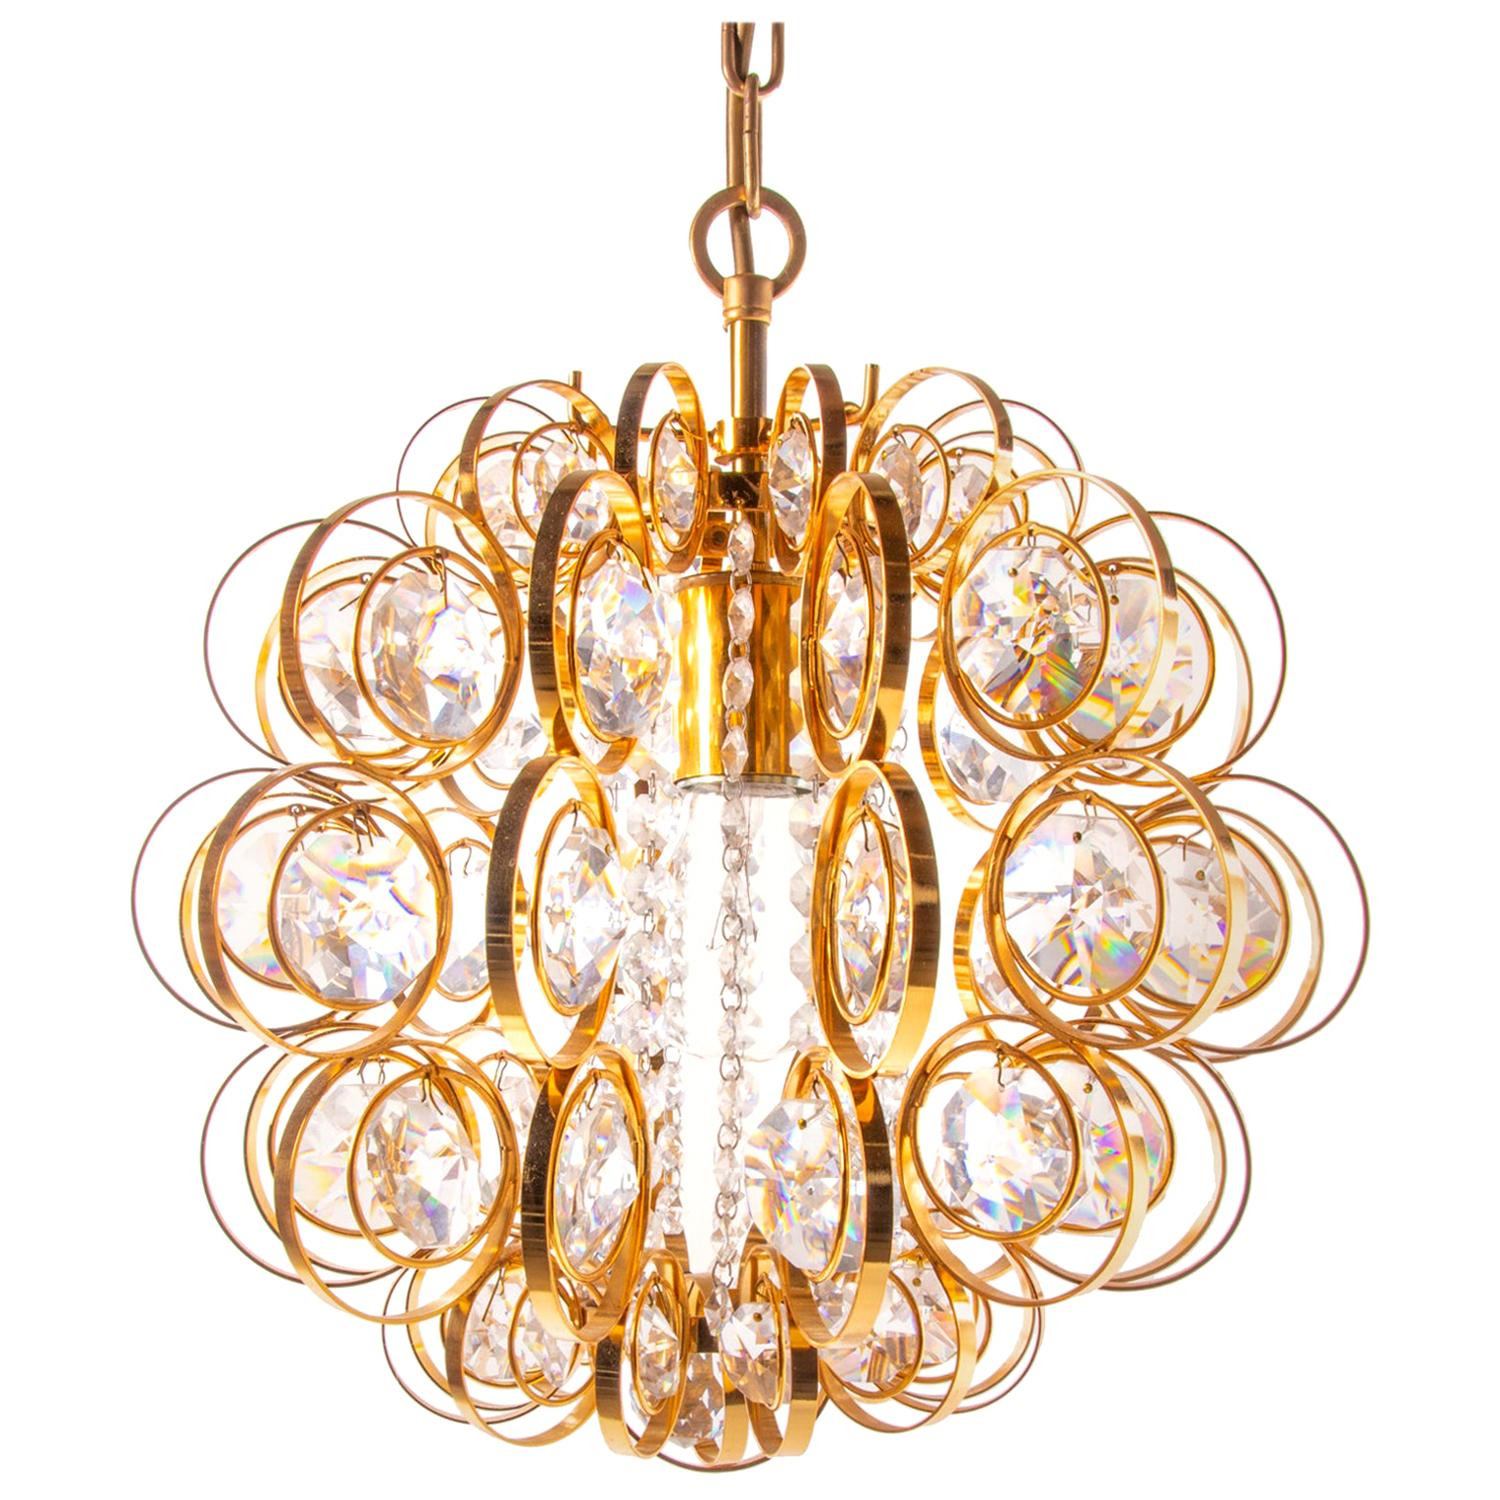 1960 Germany Palwa Orbit Chandelier Crystal & Gilt Brass by Gaetano Sciolari